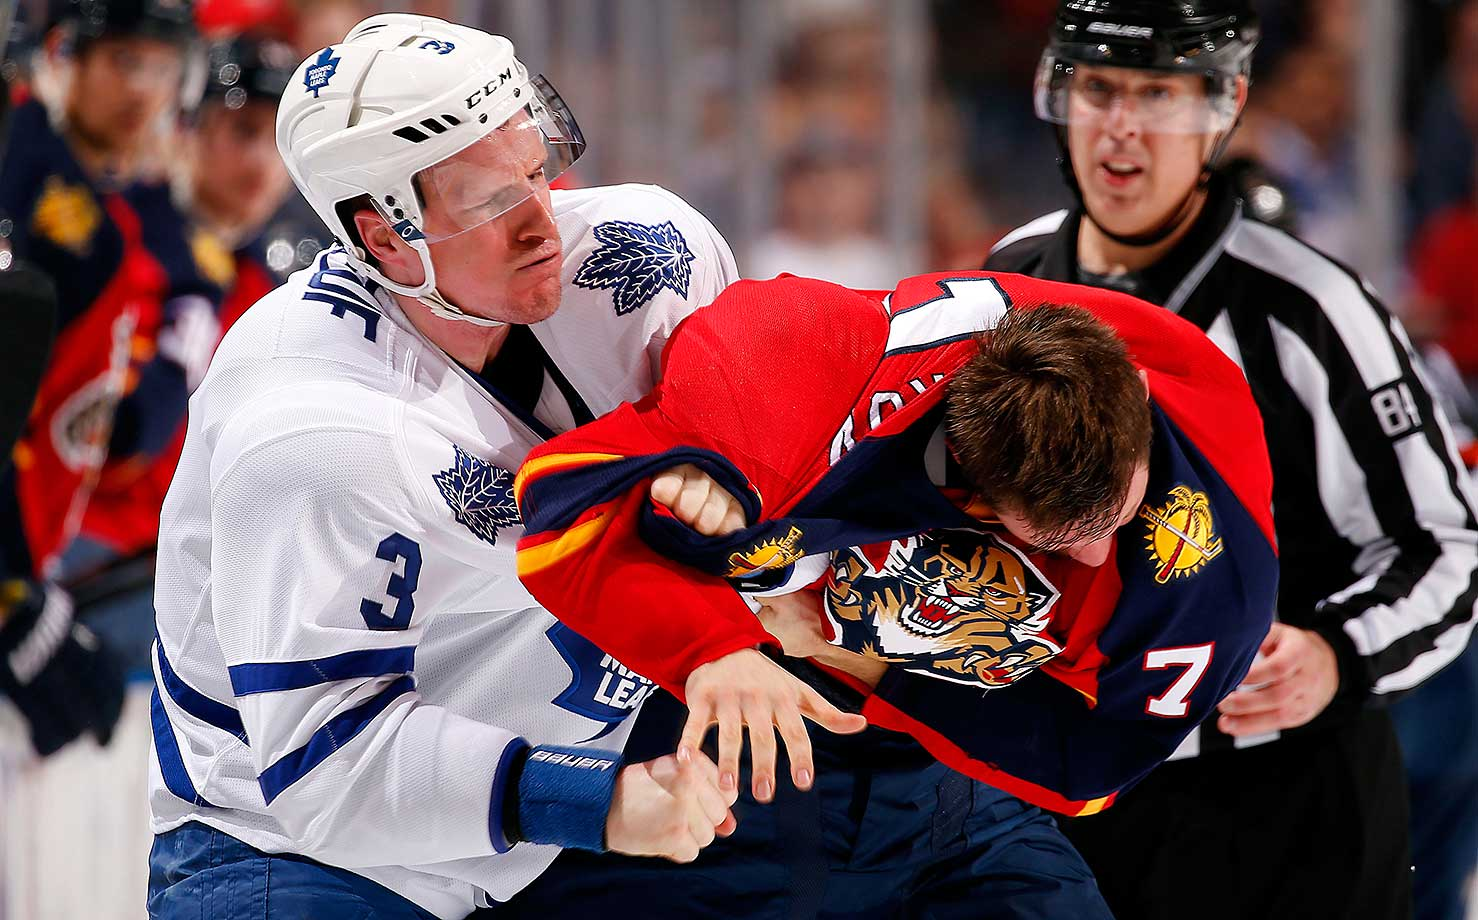 Dion Phaneuf of the Toronto Maple Leafs fights with Dmitry Kulikov of the Florida Panthers at the BB&T Center in Sunrise, Fla.